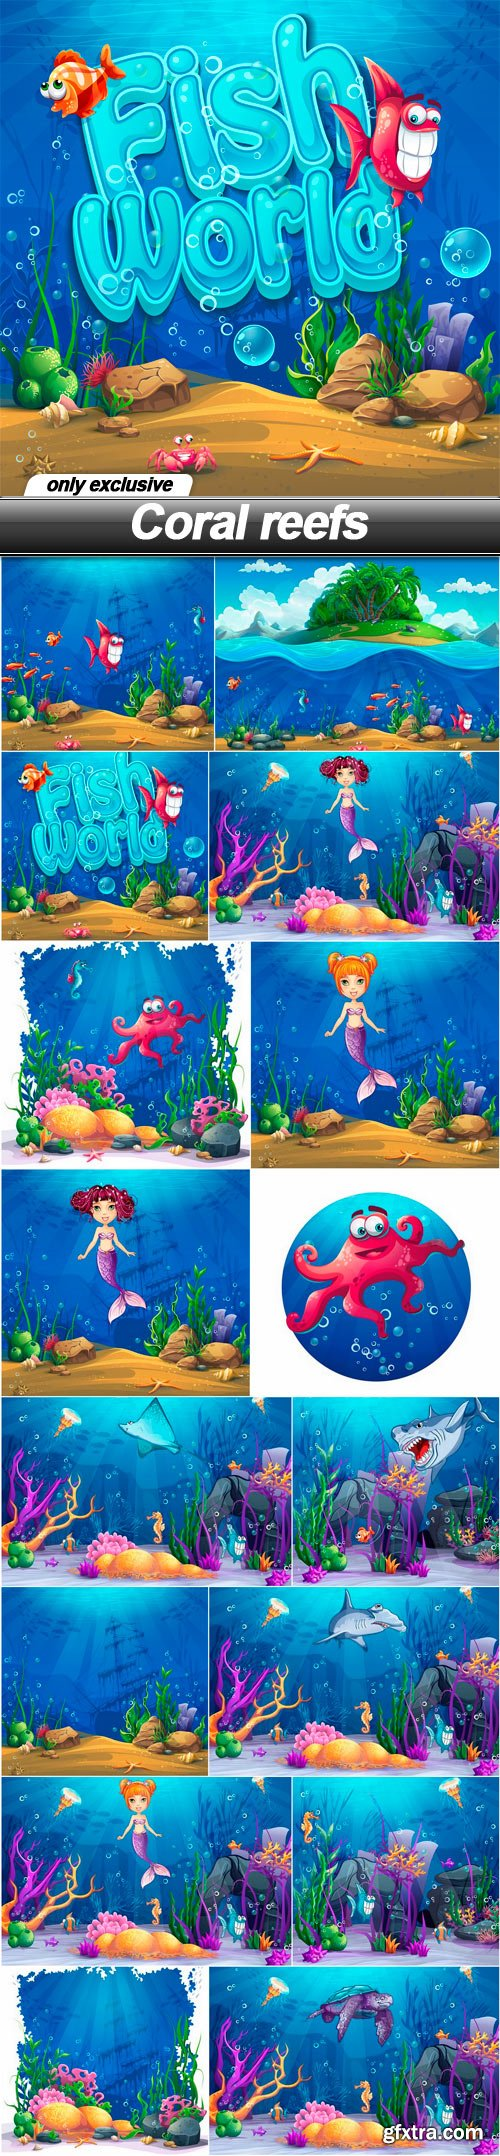 Coral reefs - 16 EPS